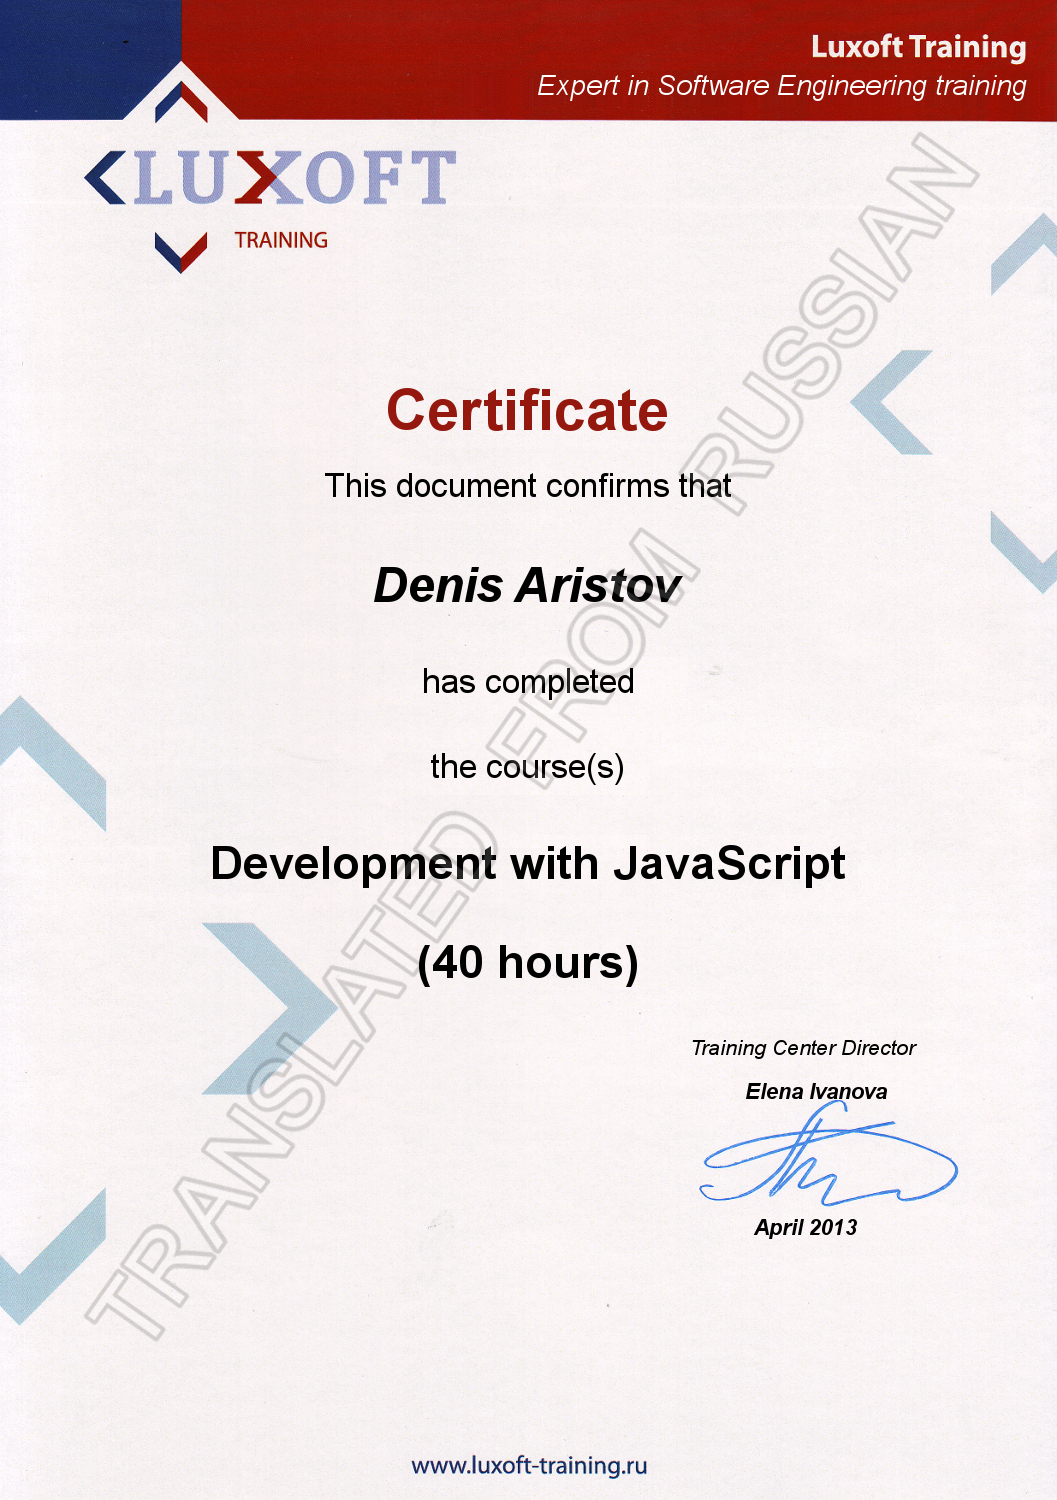 Course 'Development with JavaScript'